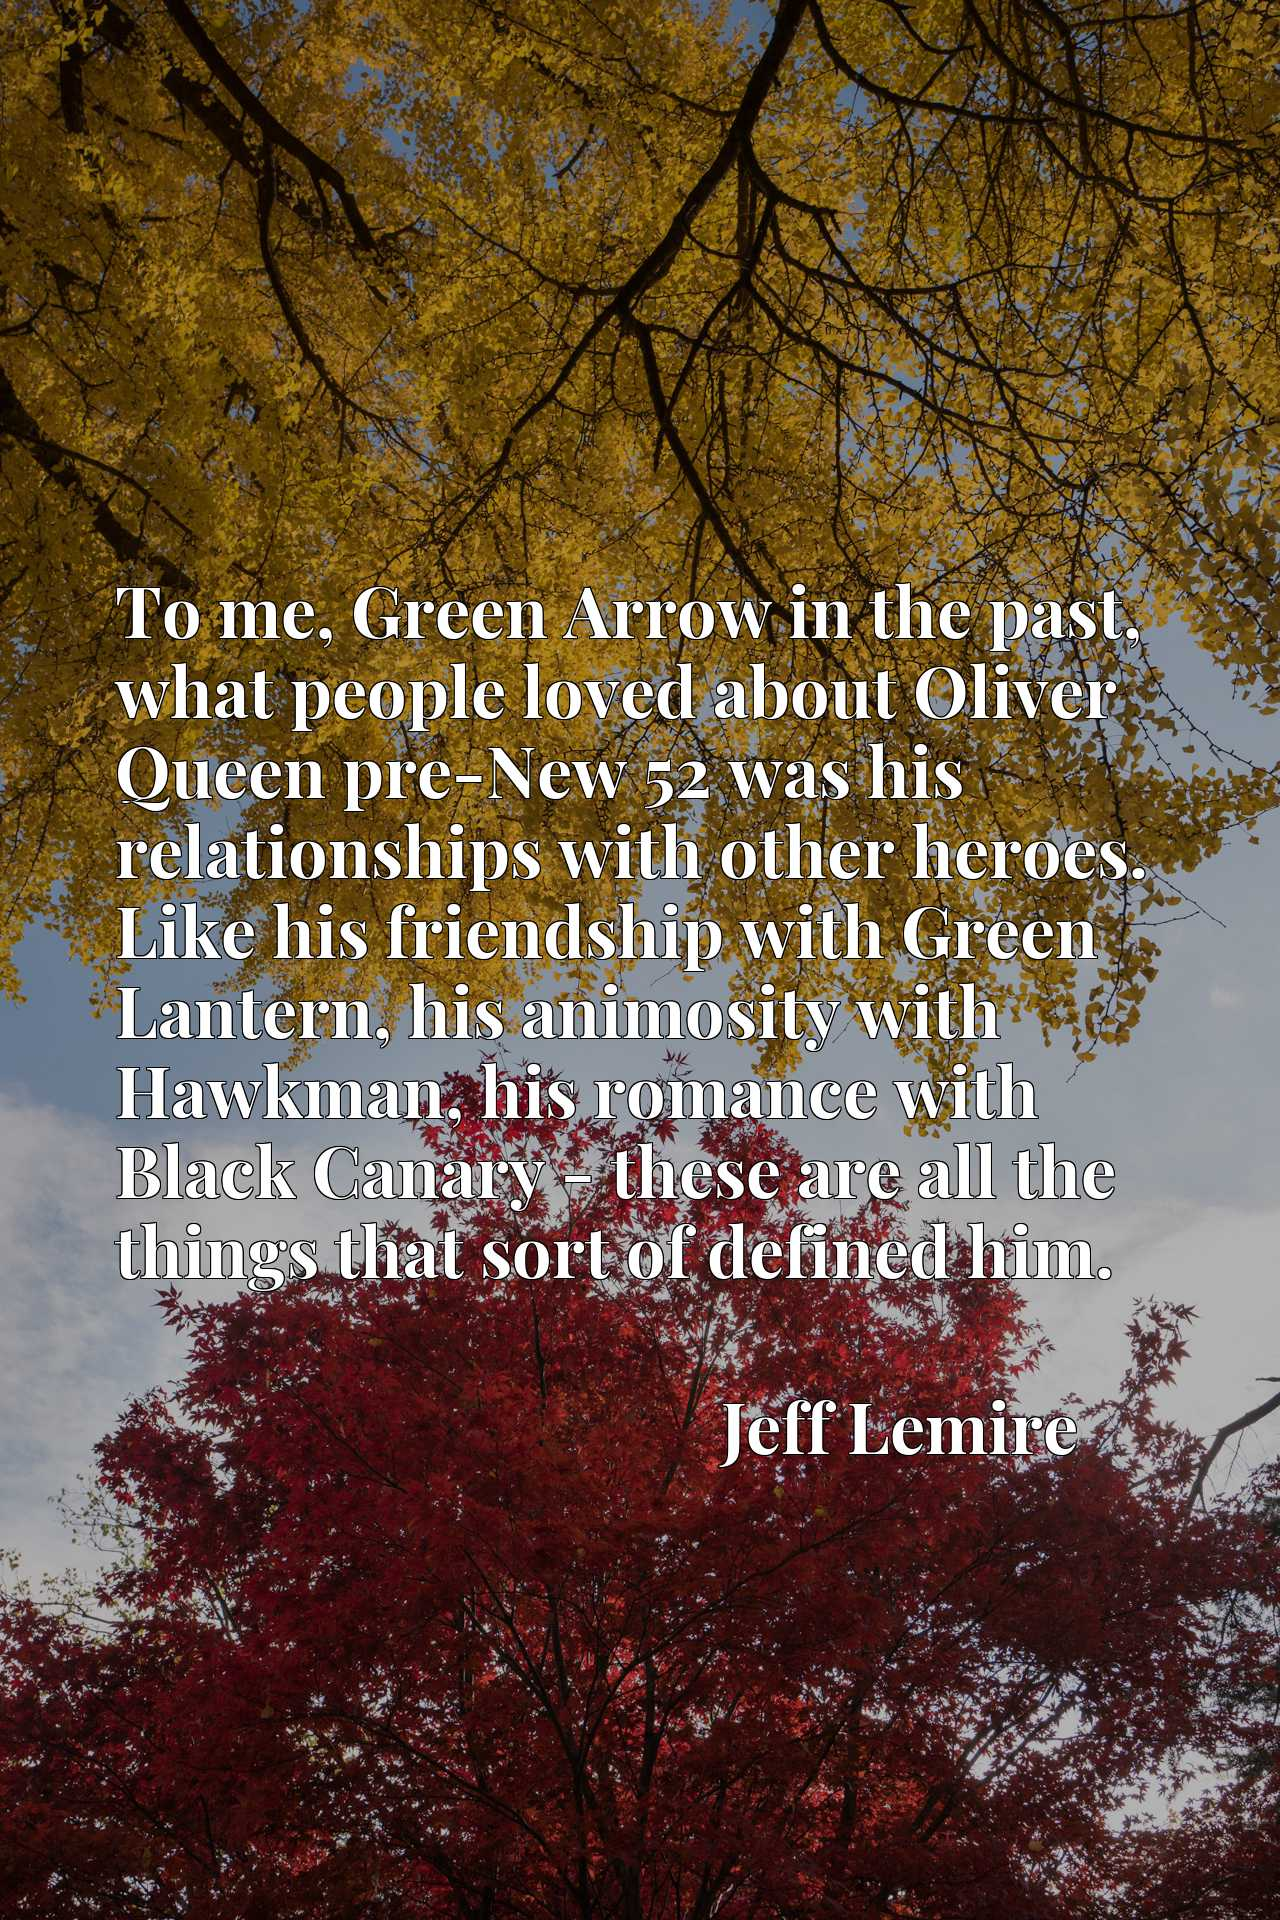 To me, Green Arrow in the past, what people loved about Oliver Queen pre-New 52 was his relationships with other heroes. Like his friendship with Green Lantern, his animosity with Hawkman, his romance with Black Canary - these are all the things that sort of defined him.